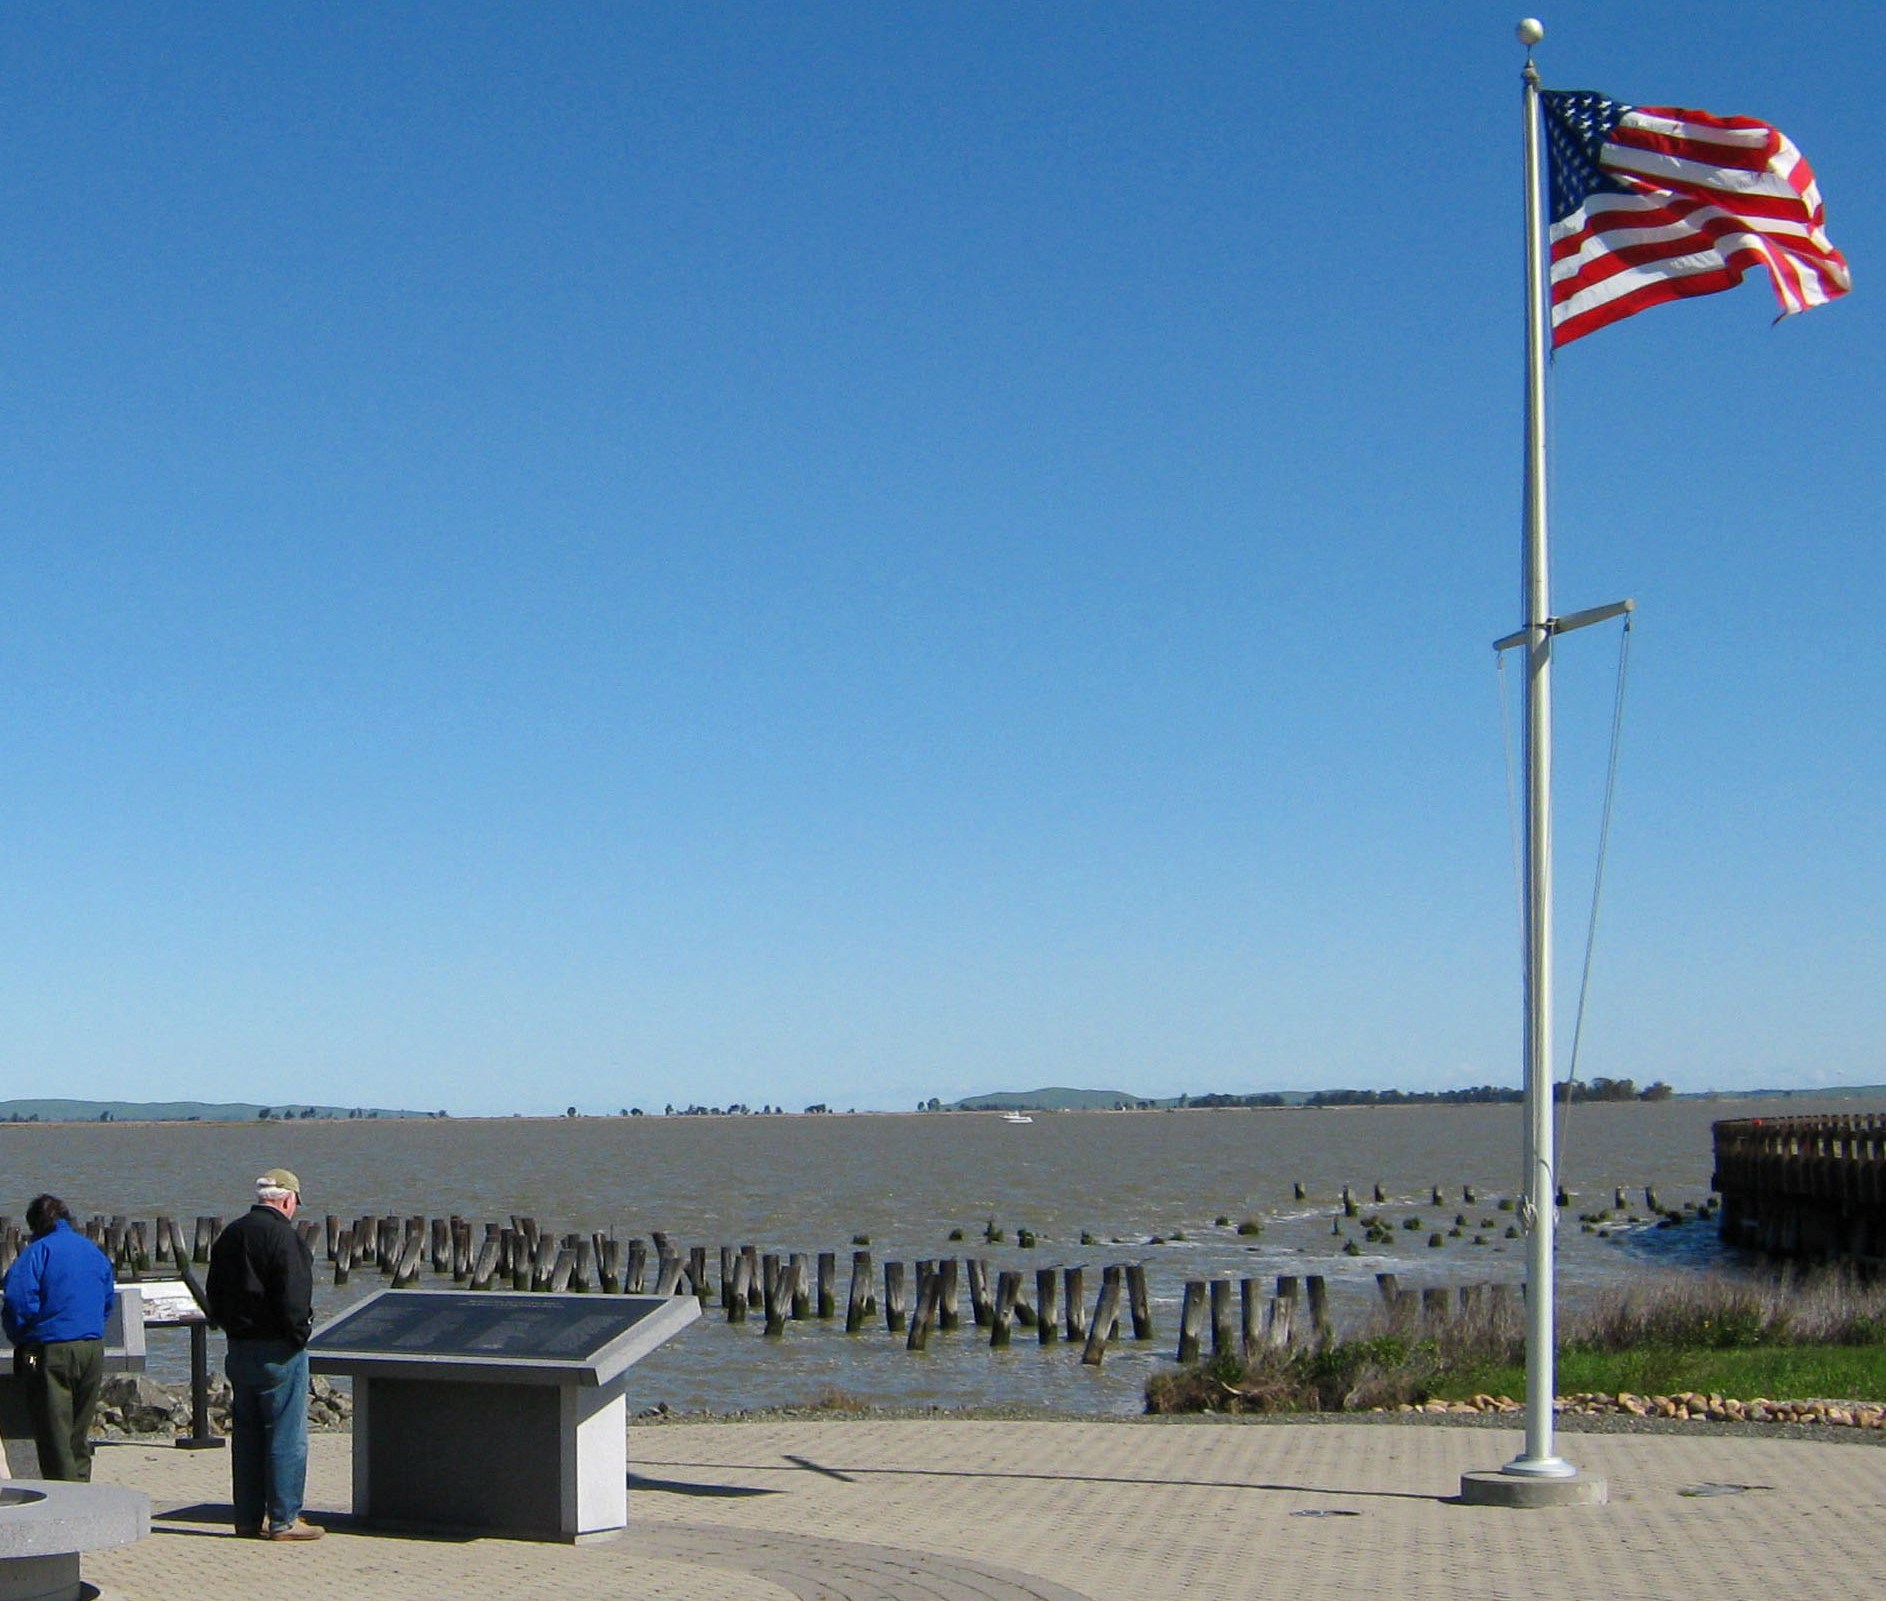 The Port Chicago Naval Magazine Memorial is located at the Concord Naval Weapons Station.